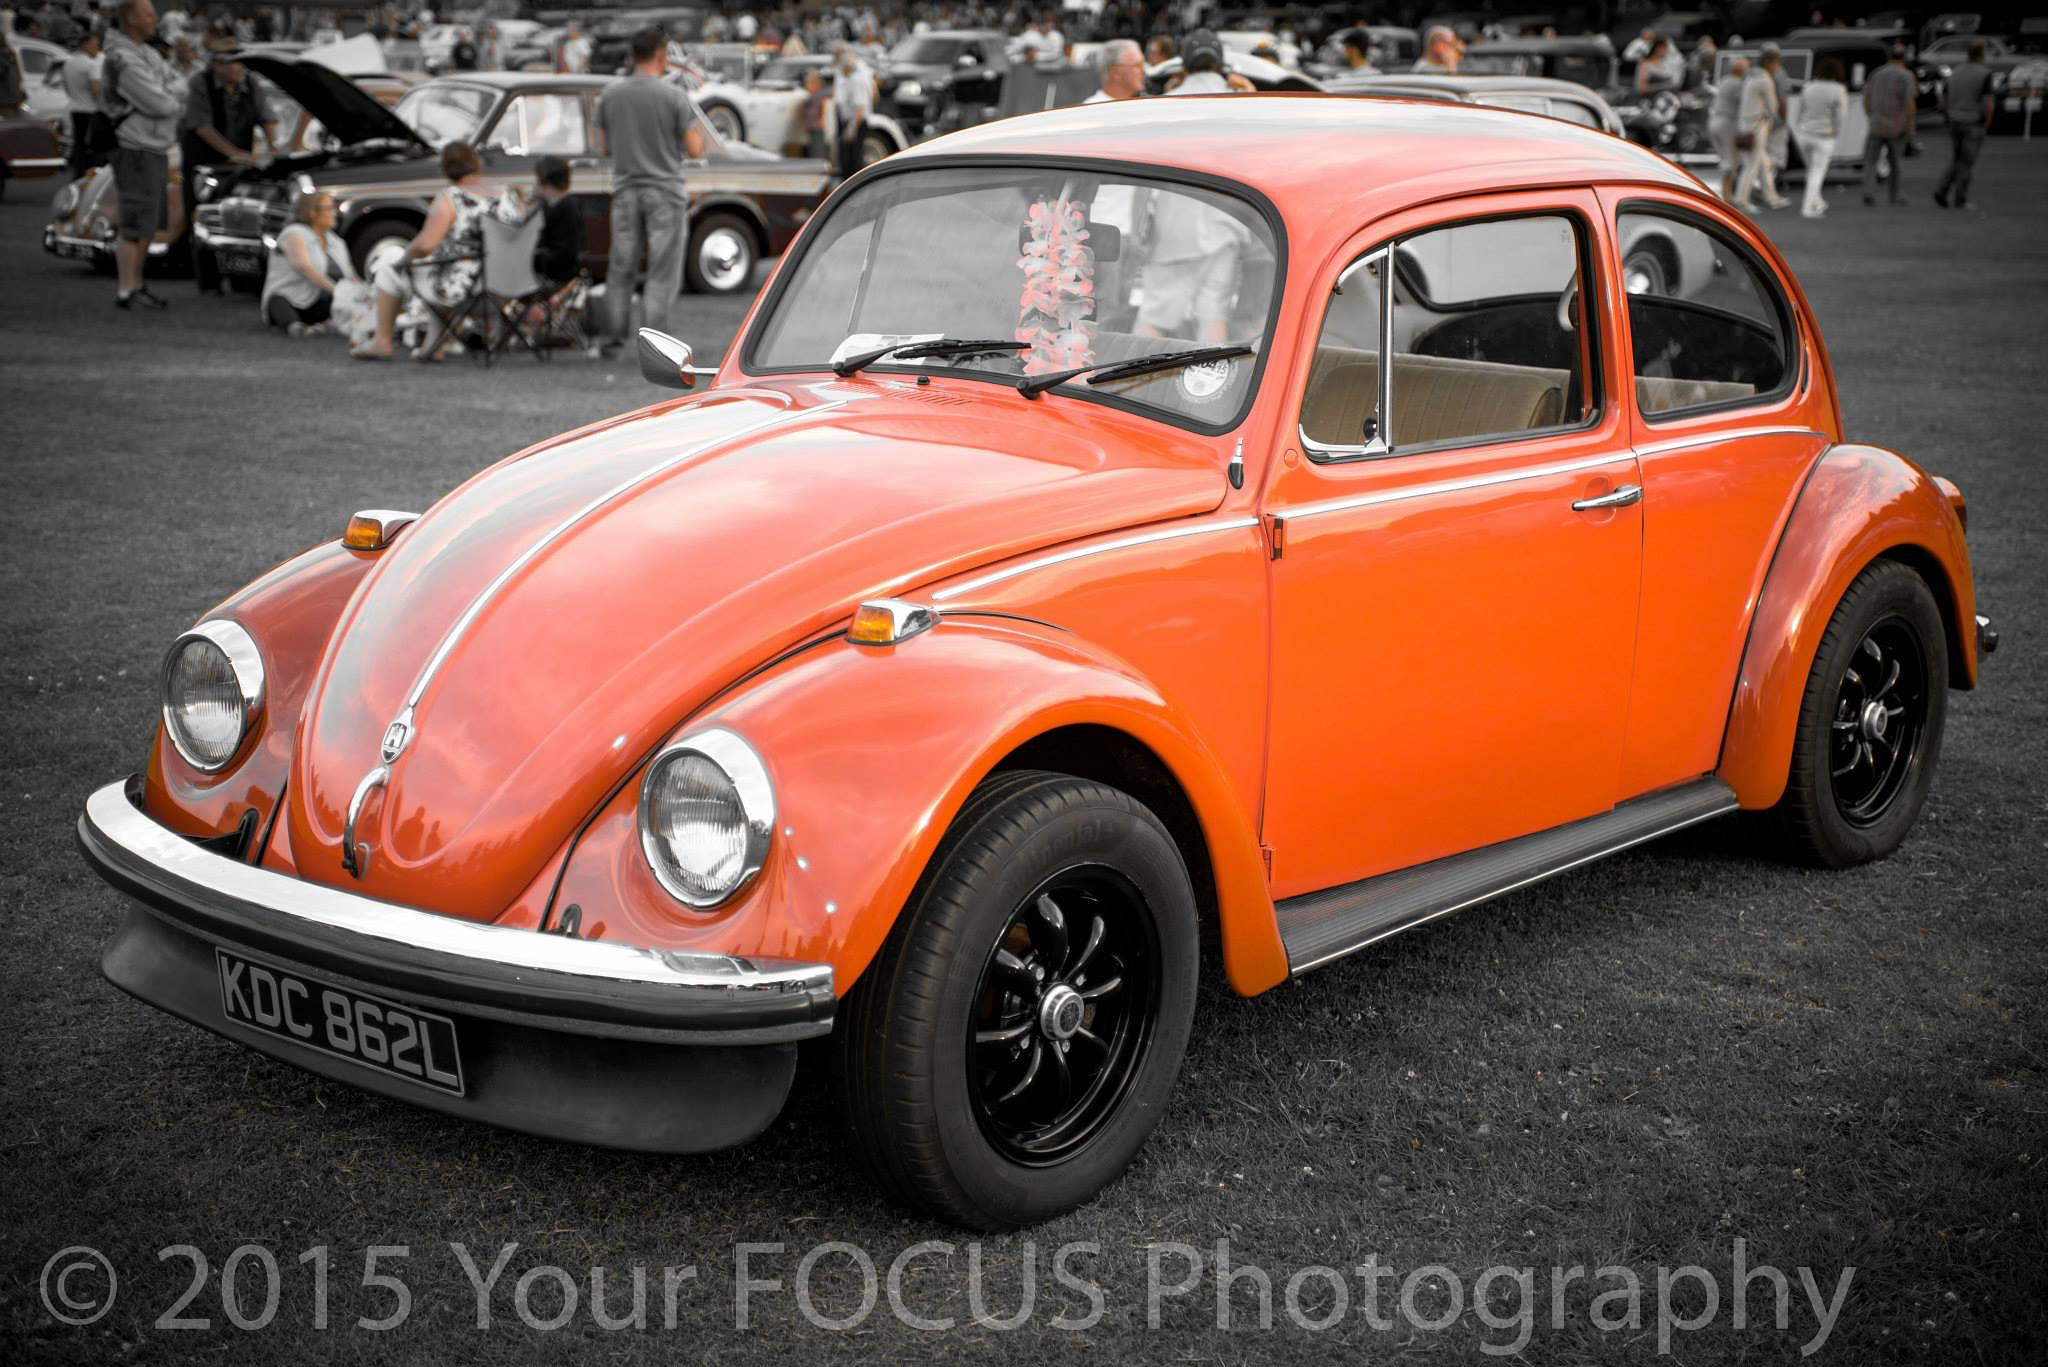 The bug by Chris Bowen